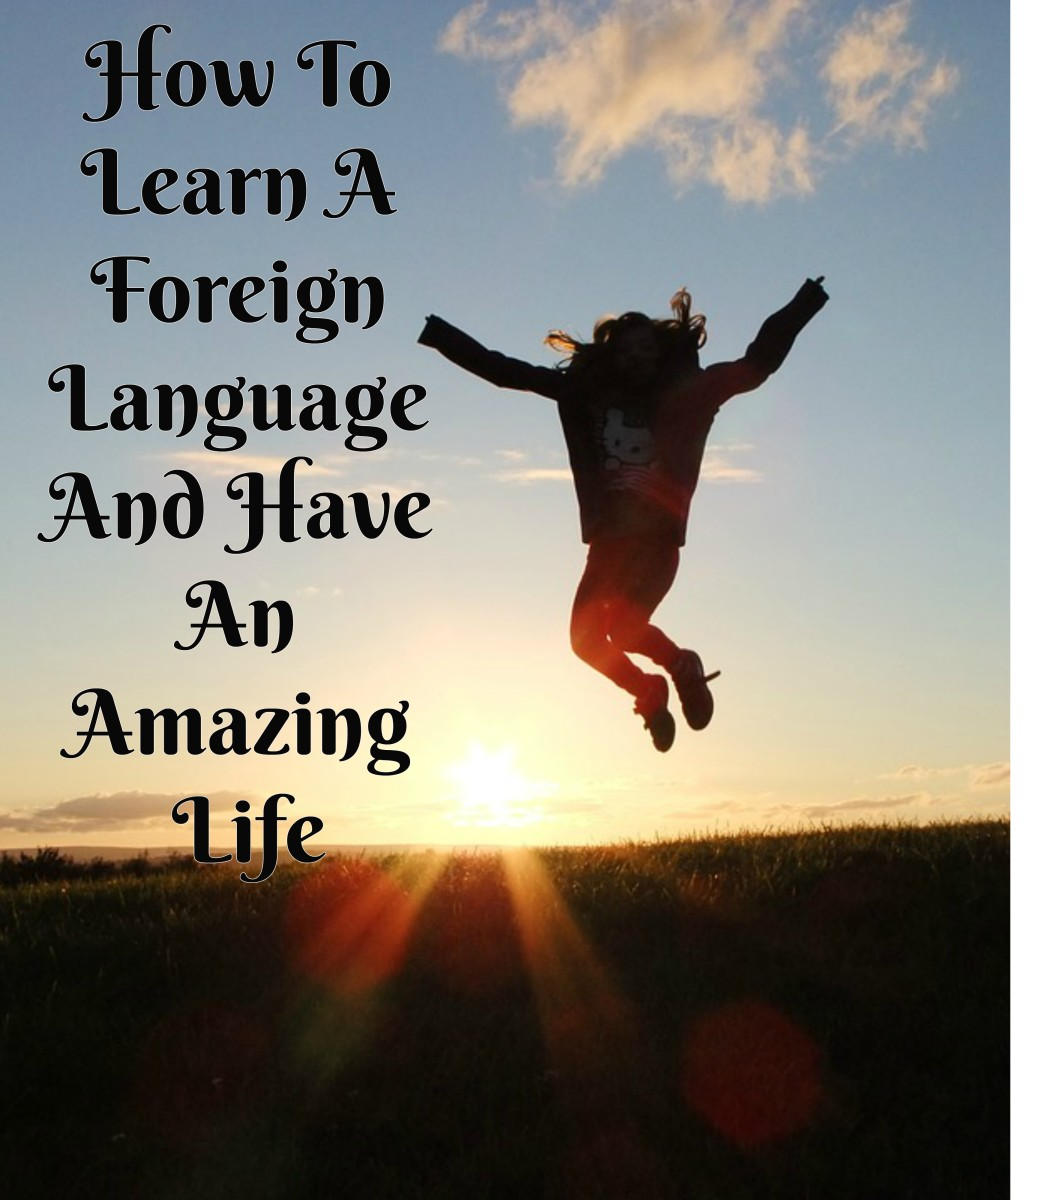 How to Learn Another Language